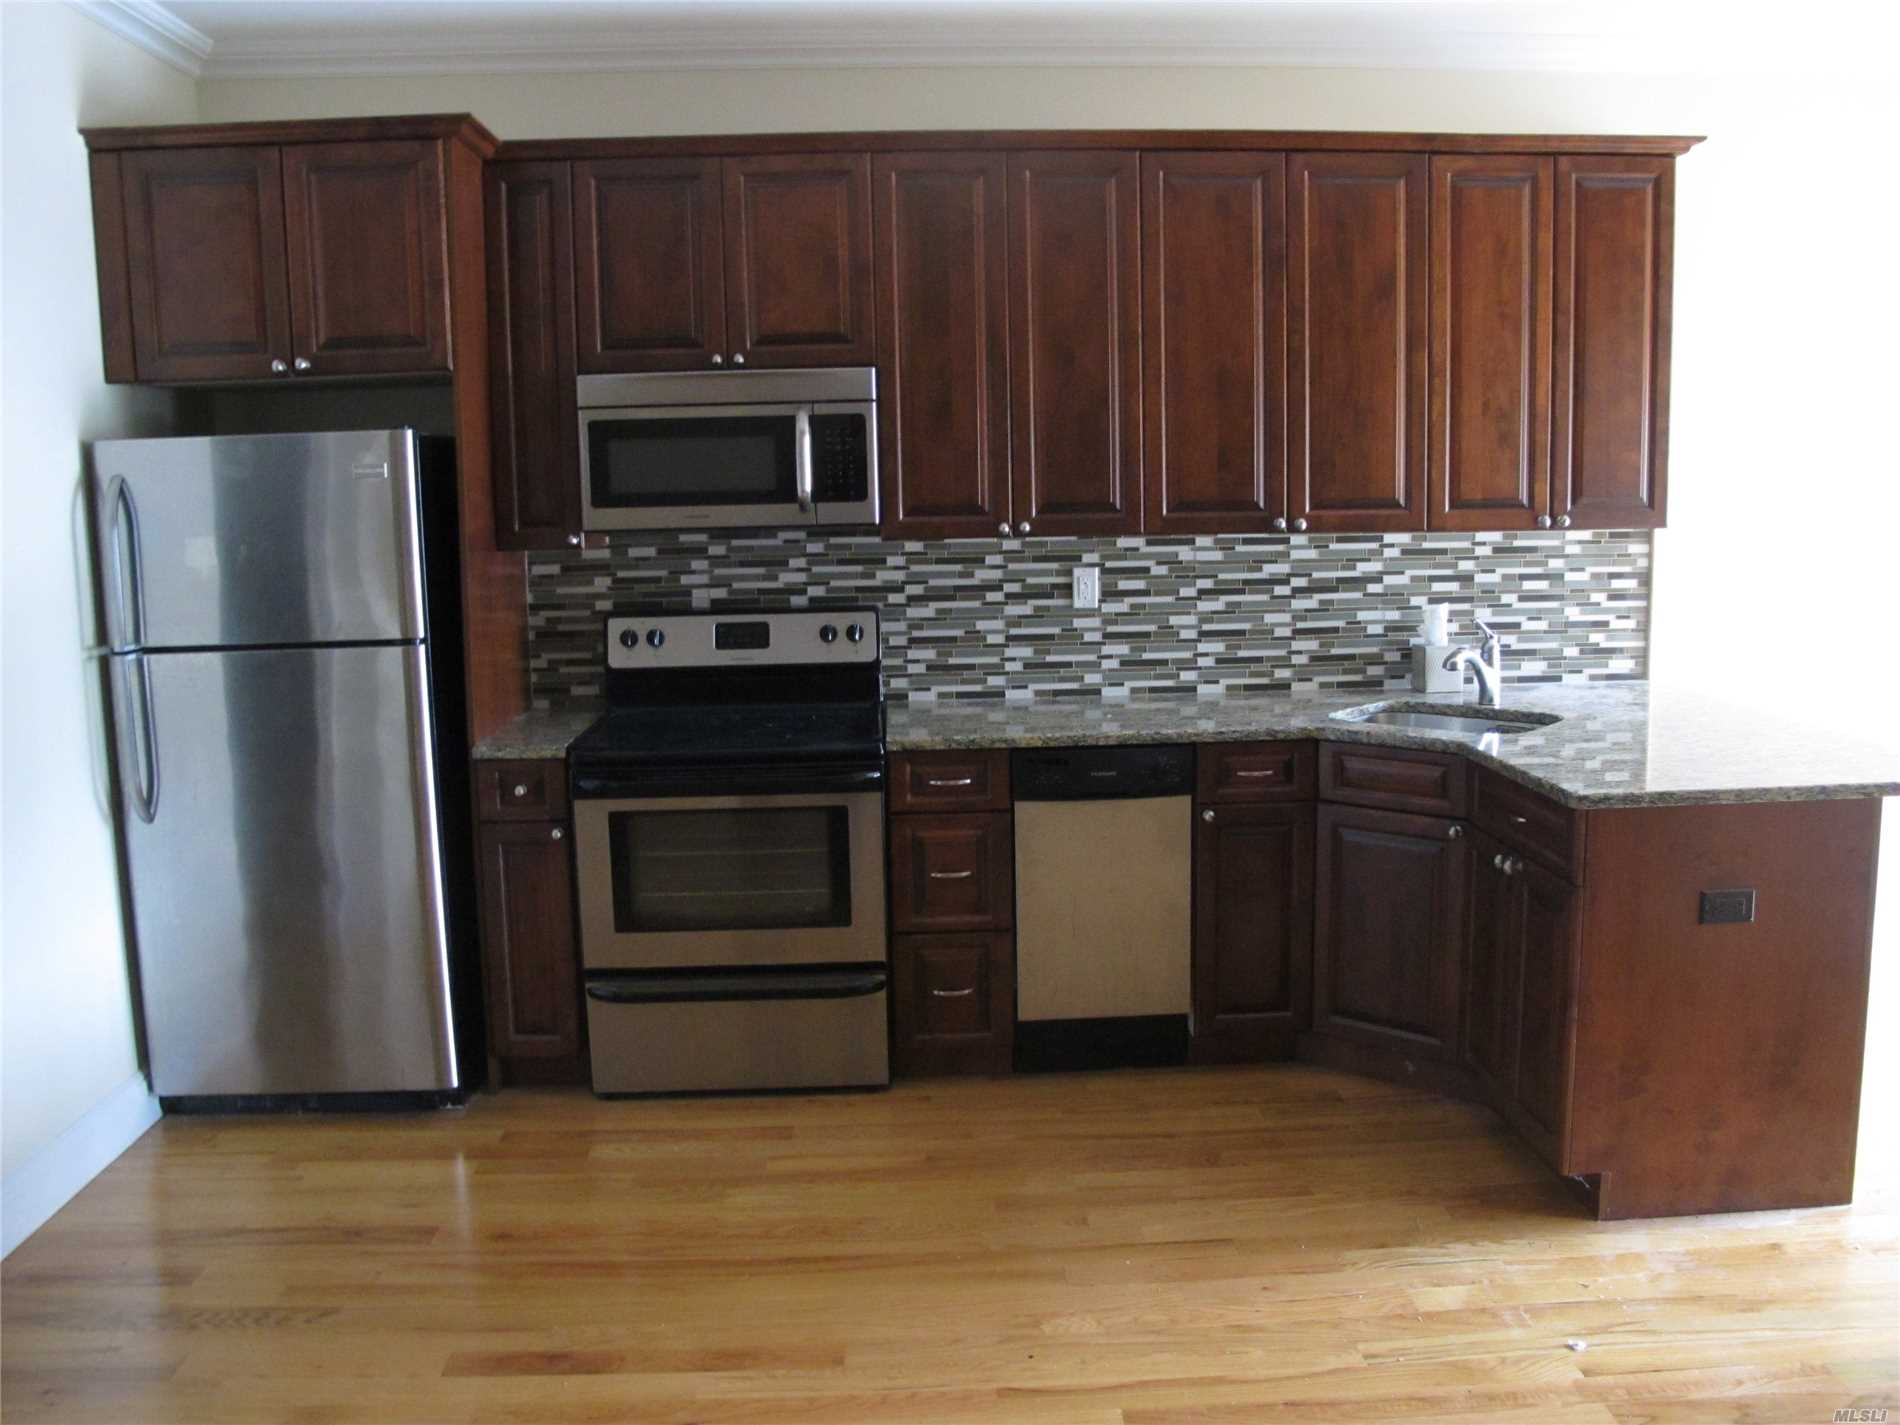 One bedroom upscale apartment in newly renovated building with 16 units. Gym and laundry room in basement. Private gated parking for for tenants use.